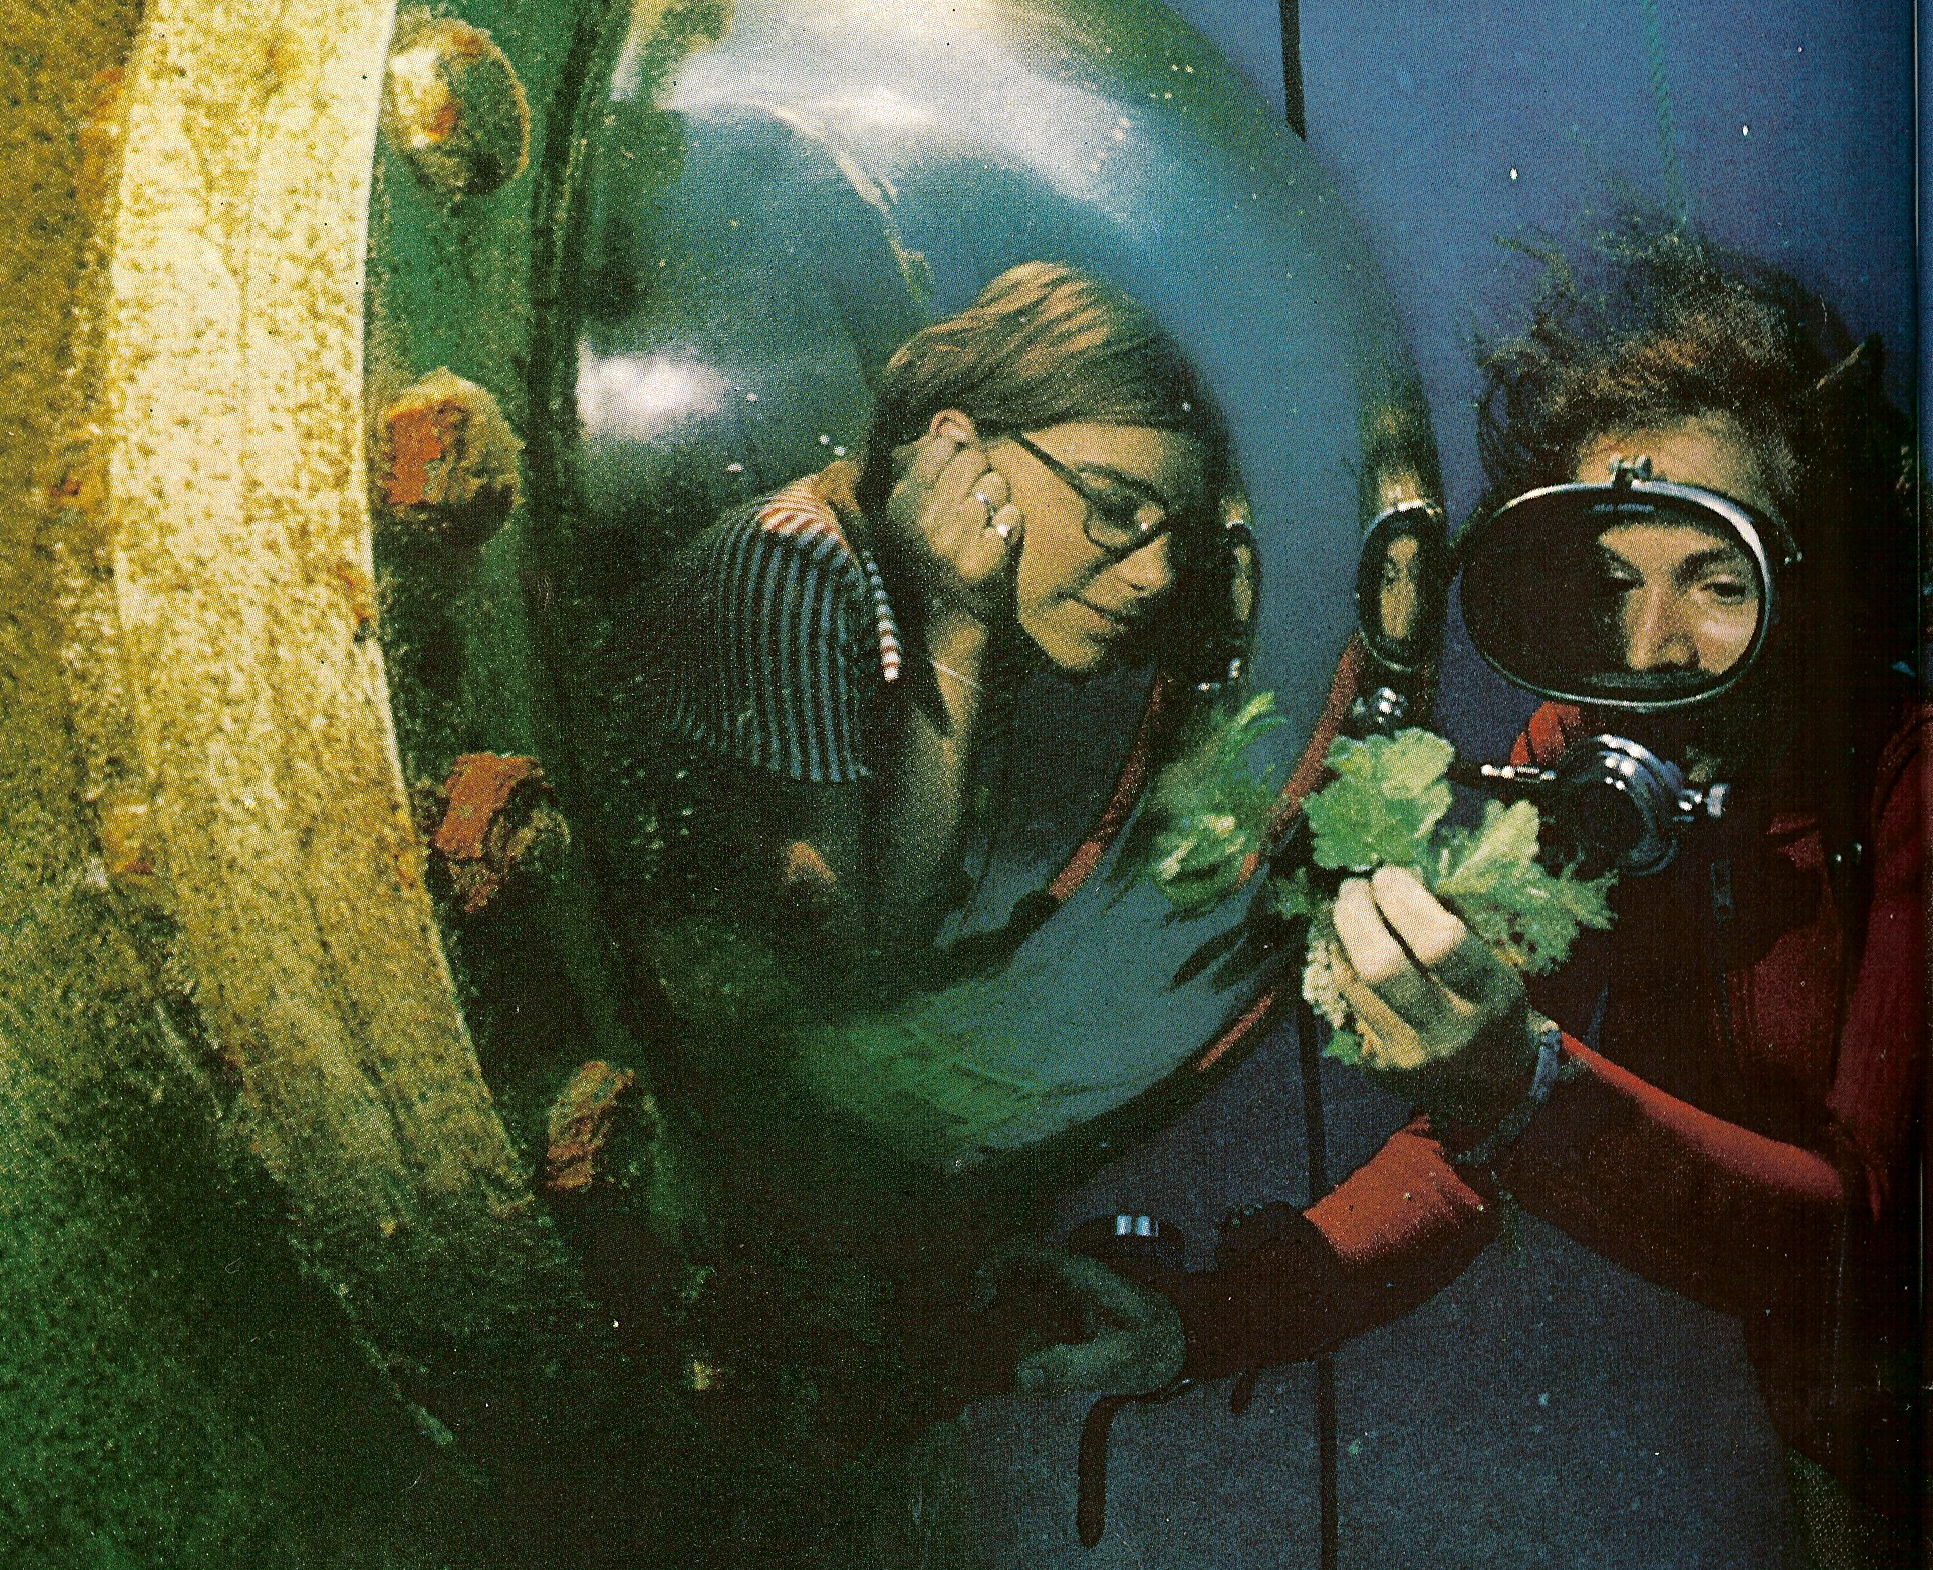 Peggy Lucas inside the Tektite Habitat observes diver Sylvia Earle (c.1970). Photo Credit: Exploring The Deep Frontier by Sylvia Earle and Al Giddings.